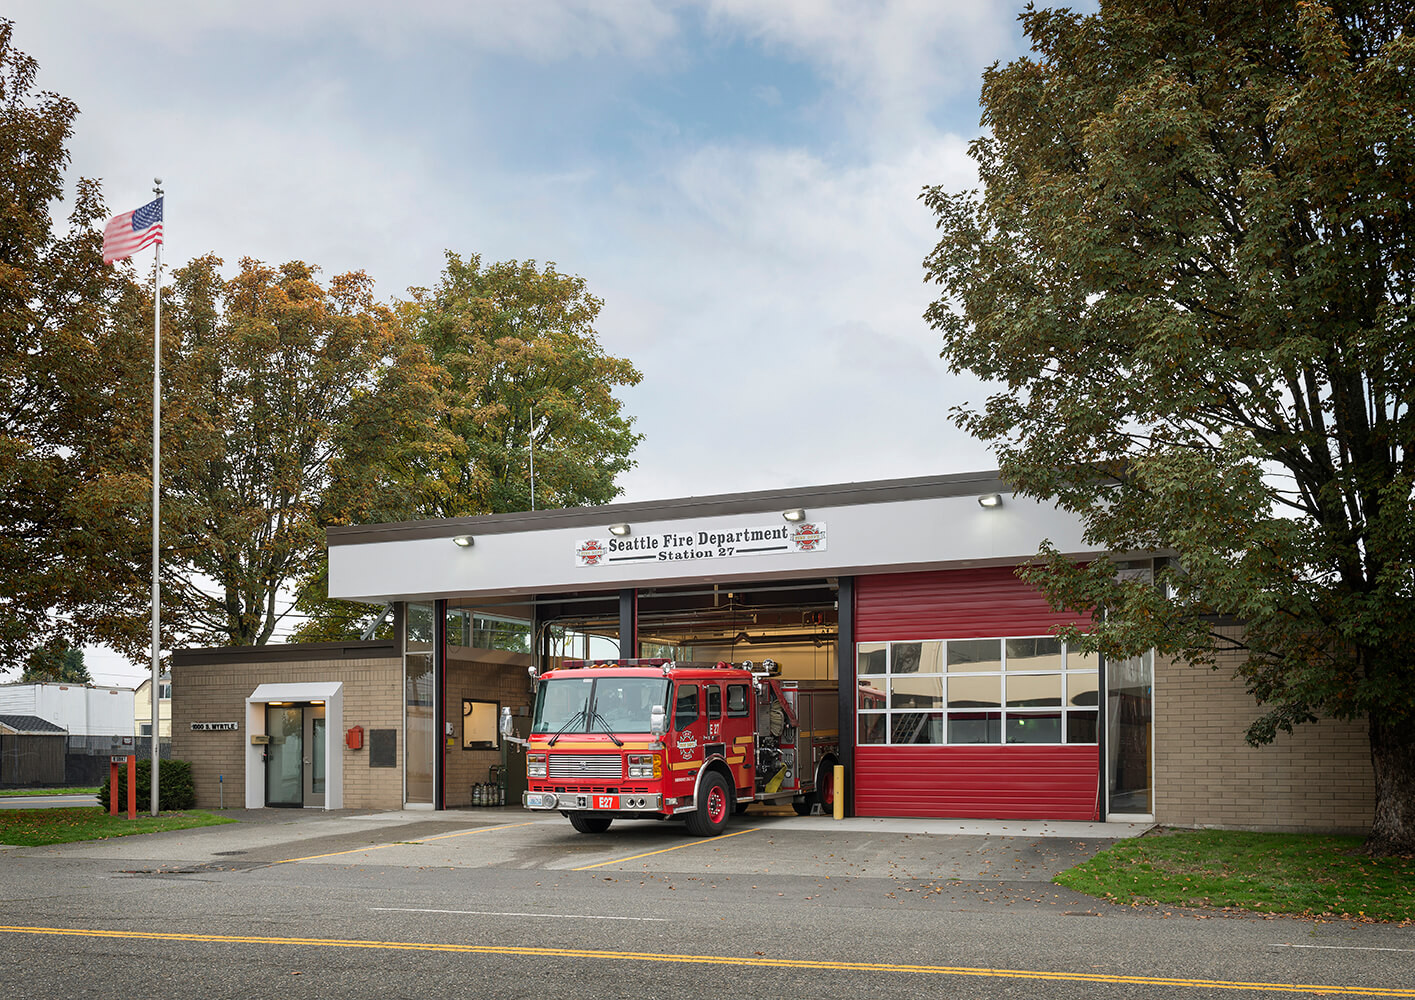 Seattle Fire Station 27 image